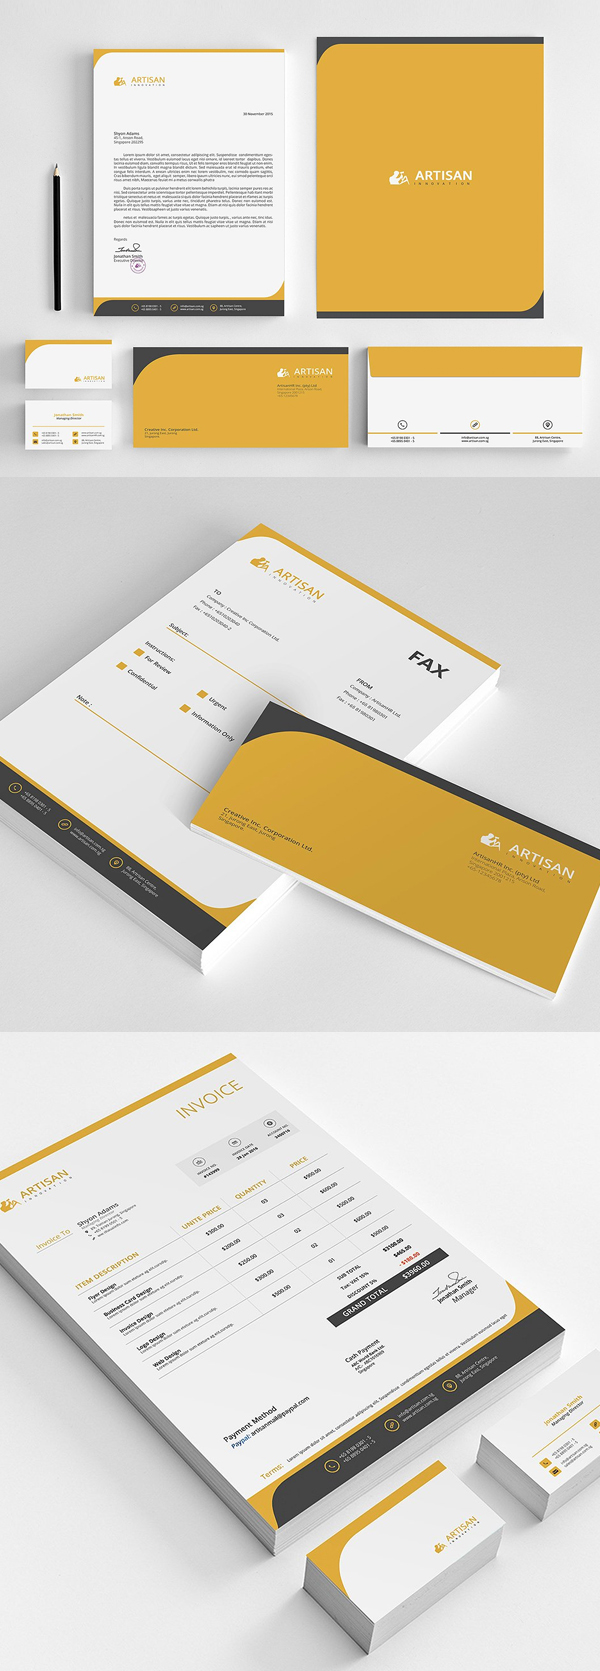 modern business branding stationery templates design 15